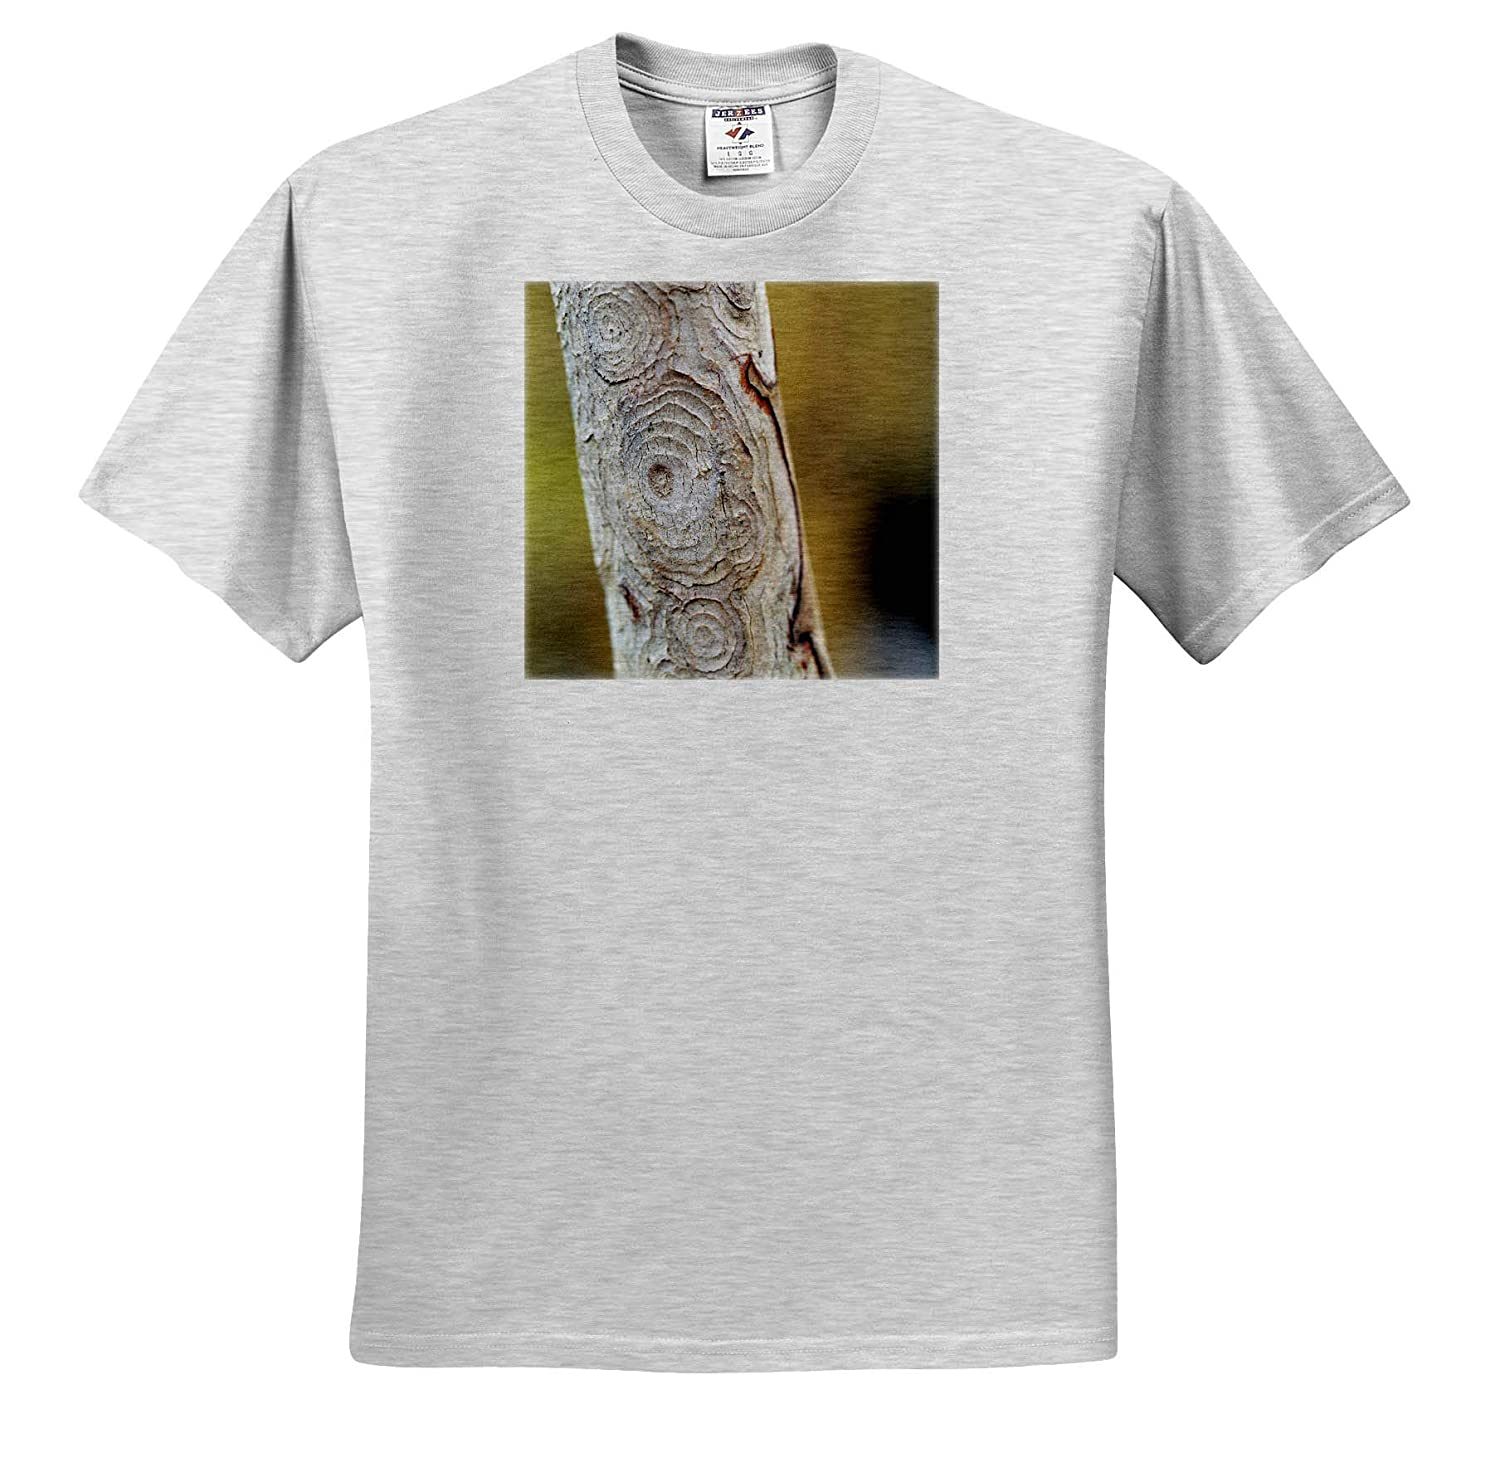 ts/_315554 - Adult T-Shirt XL 3dRose Stamp City Nature Macro Photograph of The Circles of bark of a Crepe Myrtle Tree